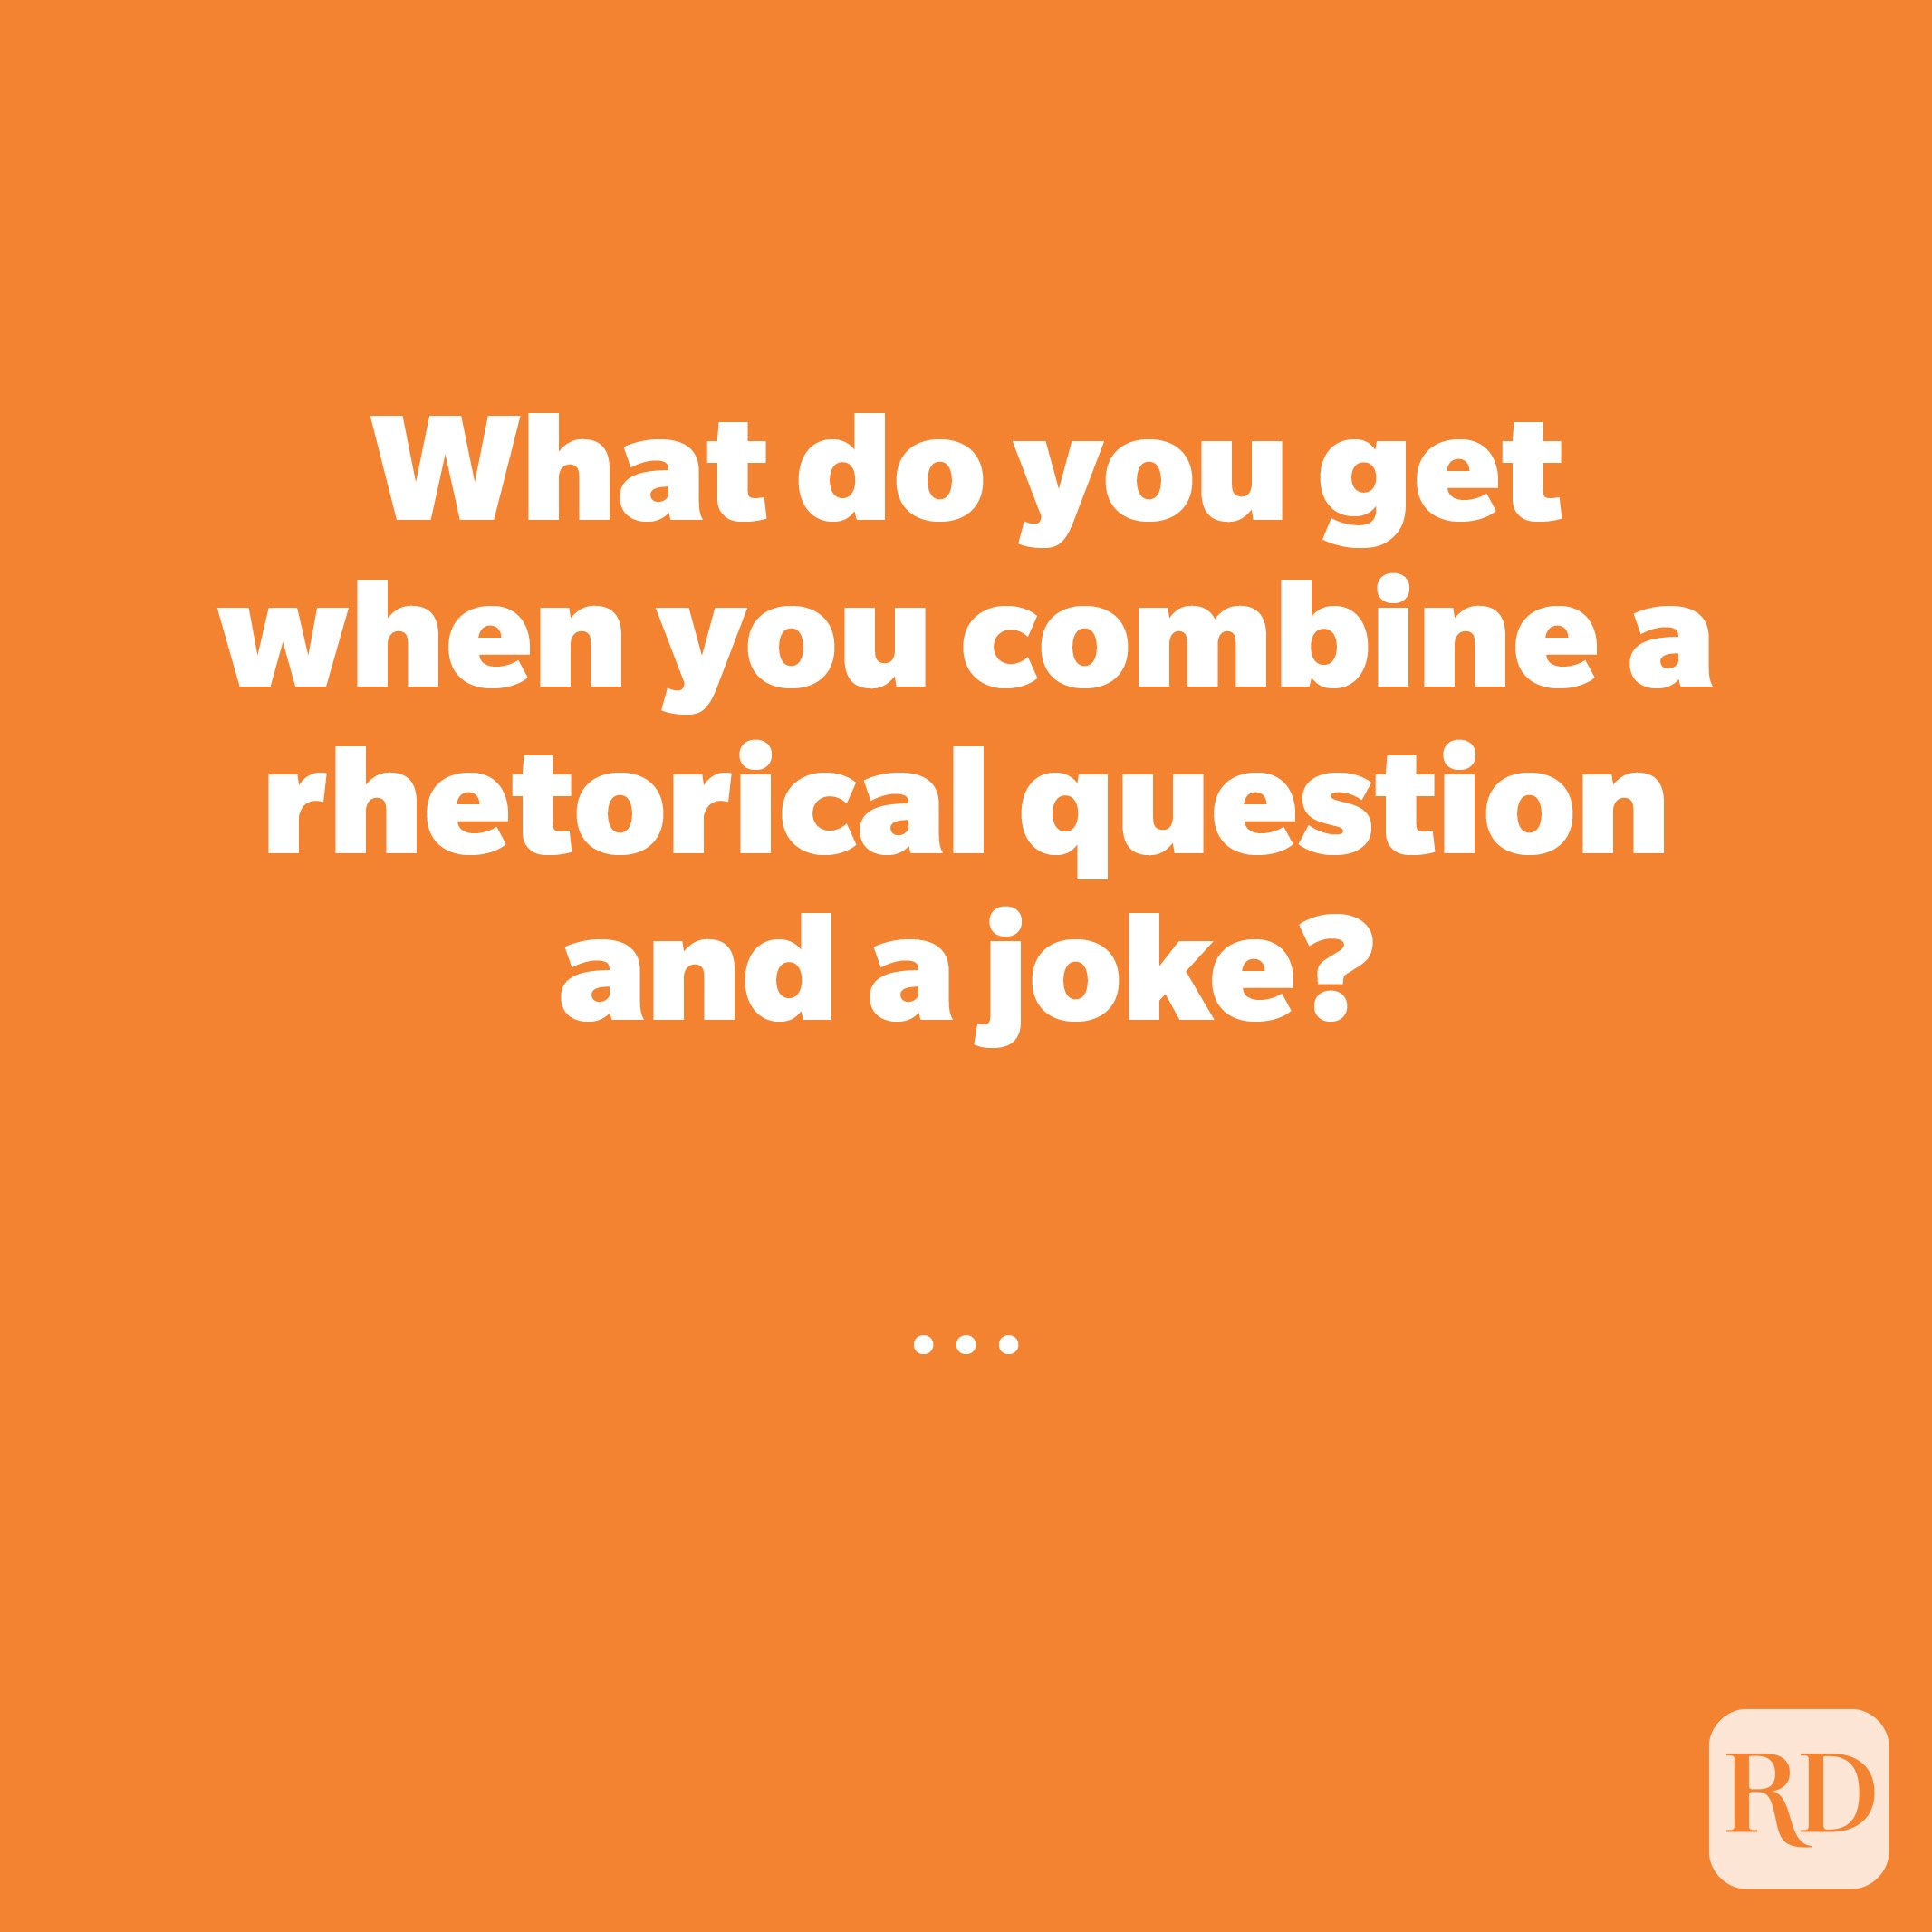 What do you get when you combine a rhetorical question and a joke?